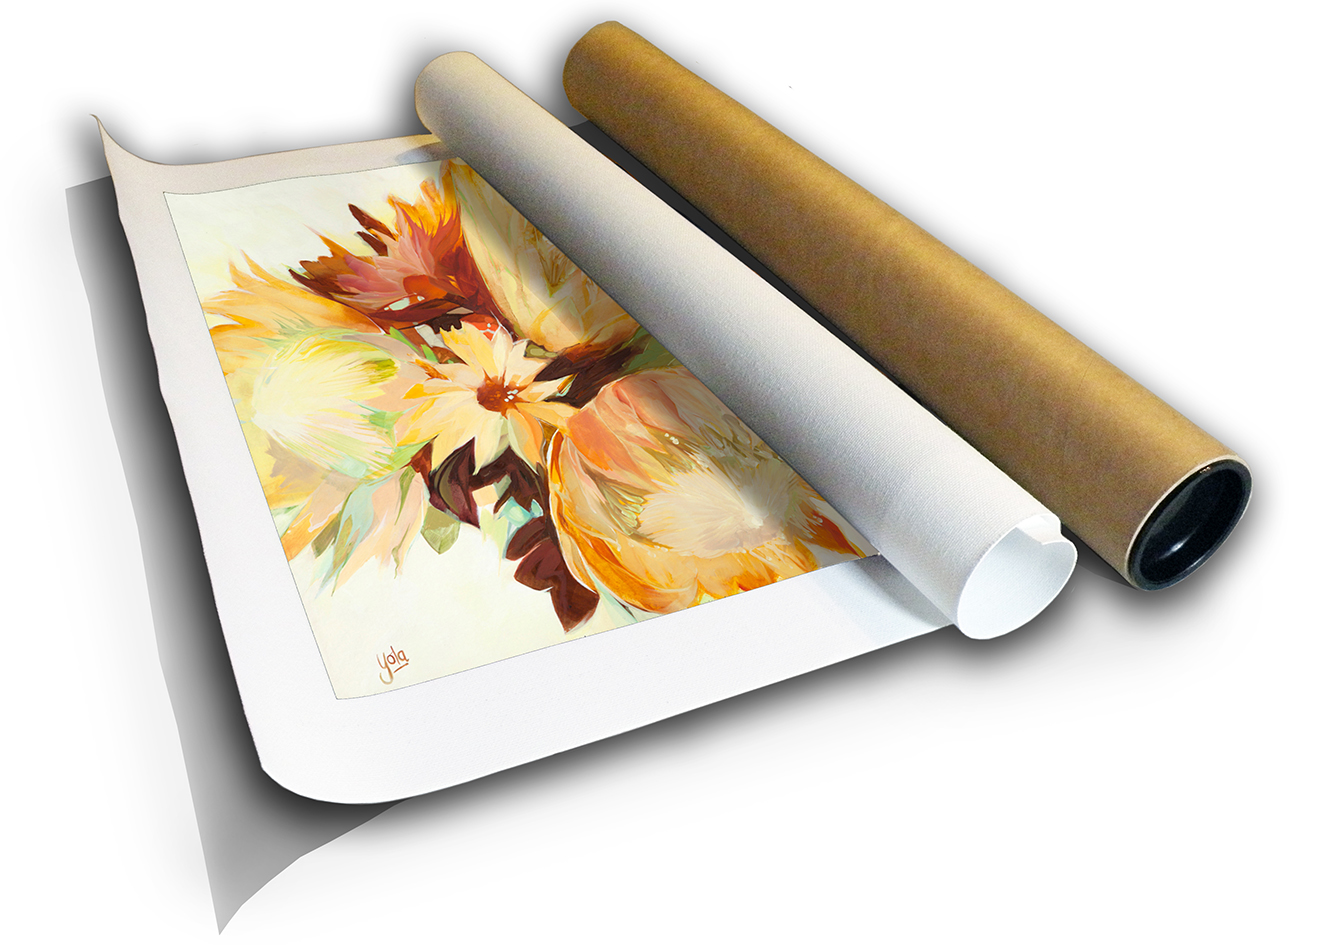 The Studio Art Gallery - Proteas I by Yola Quinn - Canvas Print Rolled in a Tube